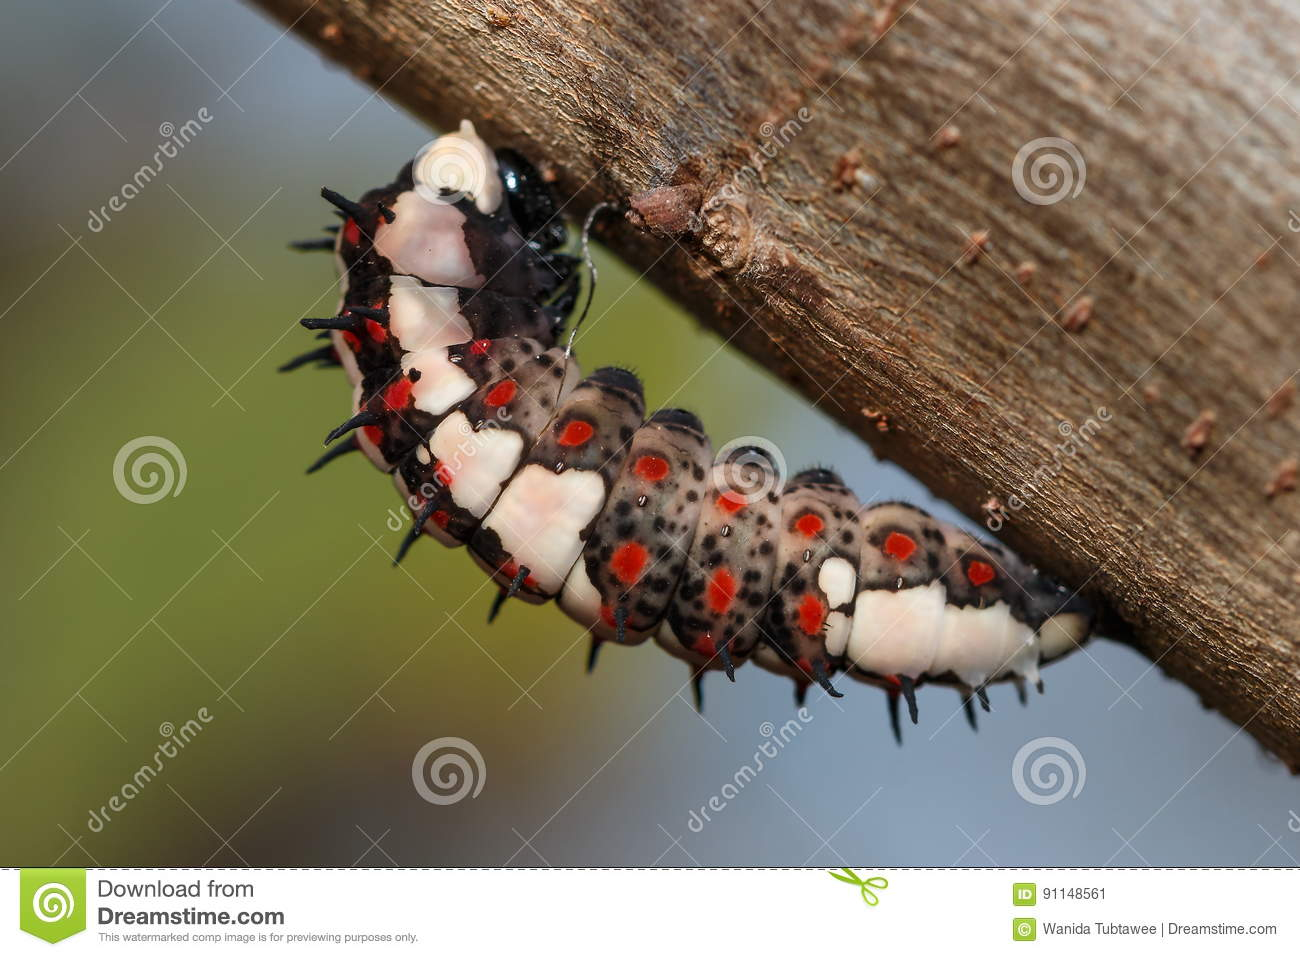 The worm,caterpillar, a worm on a tree.